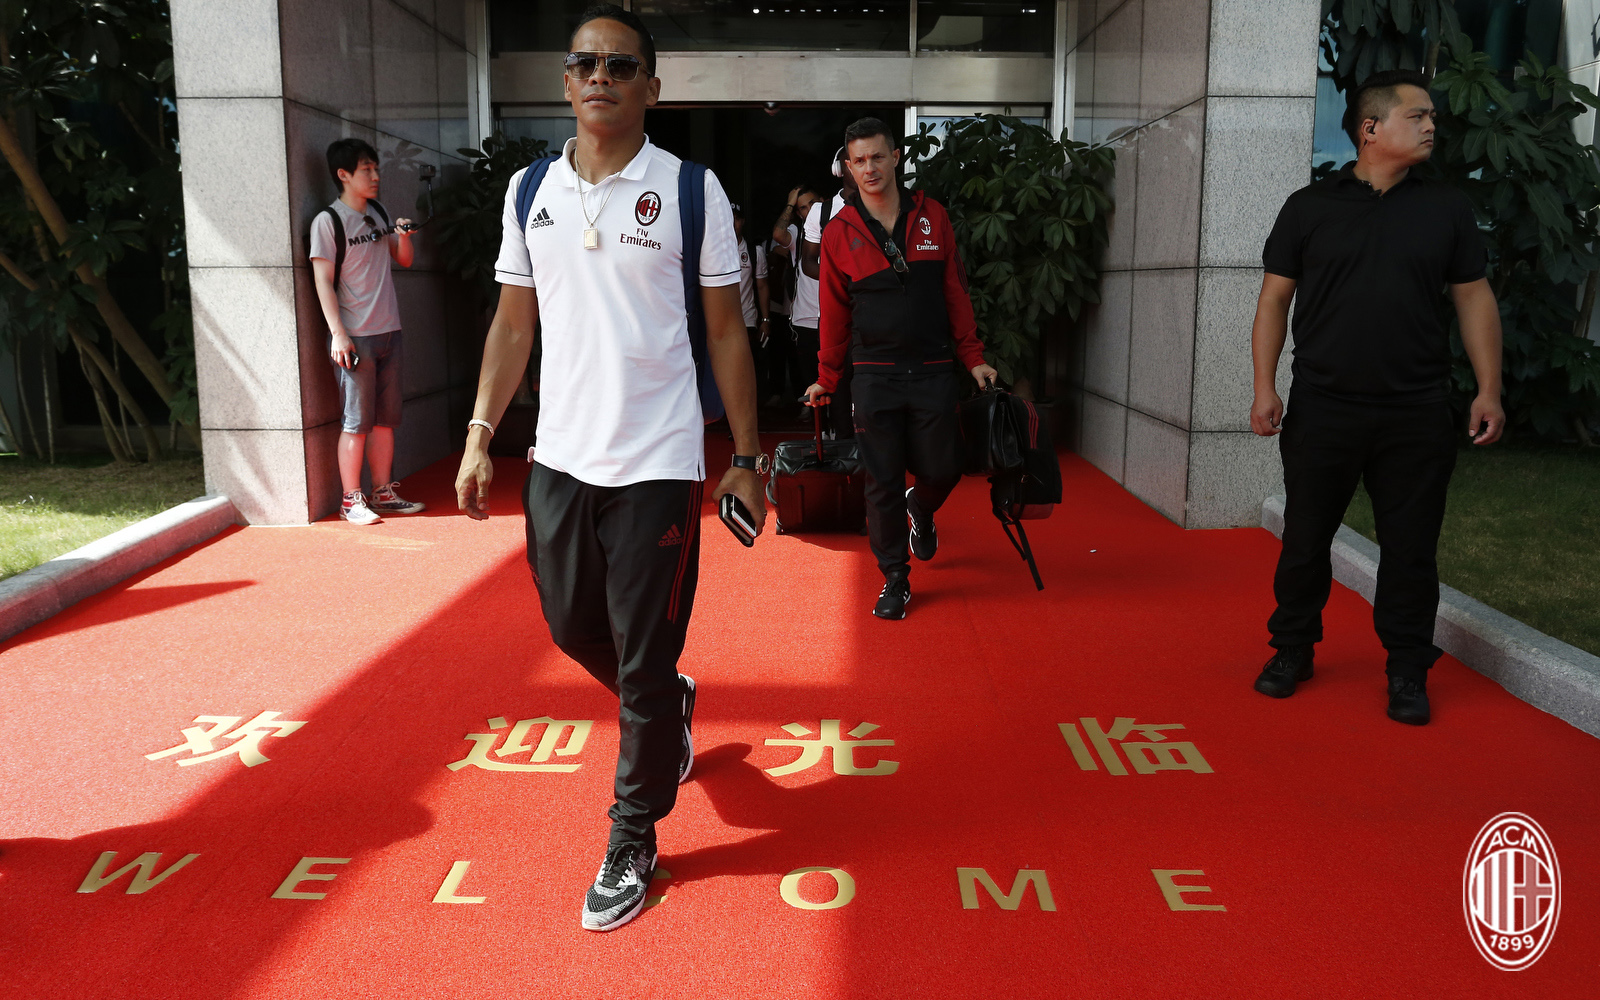 Foto LaPresse - Spada 15 Luglio 2017 - Guangzhou (Cina) A.C. Milan - Tournee Cina 2017 - Arrivo a Guangzhou Sport Calcio Nella foto: Bacca Photo LaPresse - Spada July 15, 2017 Guangzhou (China) Sport Soccer A.C. Milan -China Tournee 2017 - Arrive in Guangzhou In the pic: Bacca